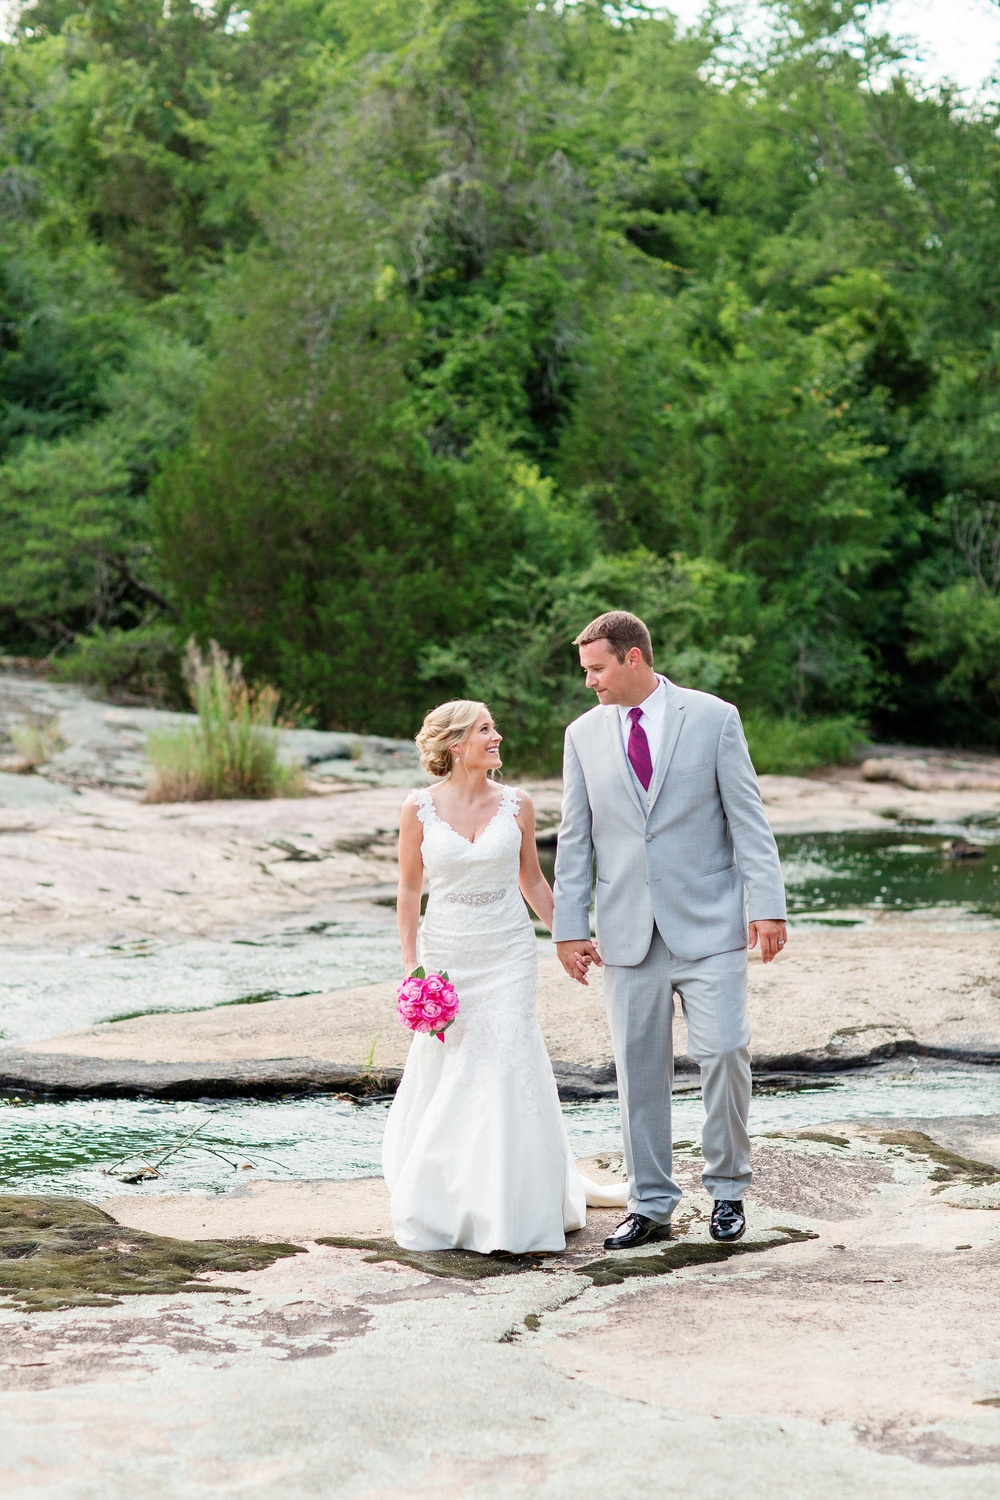 WitwiskiWedding_TheMillAtFineCreek_BLOG_0109.jpg